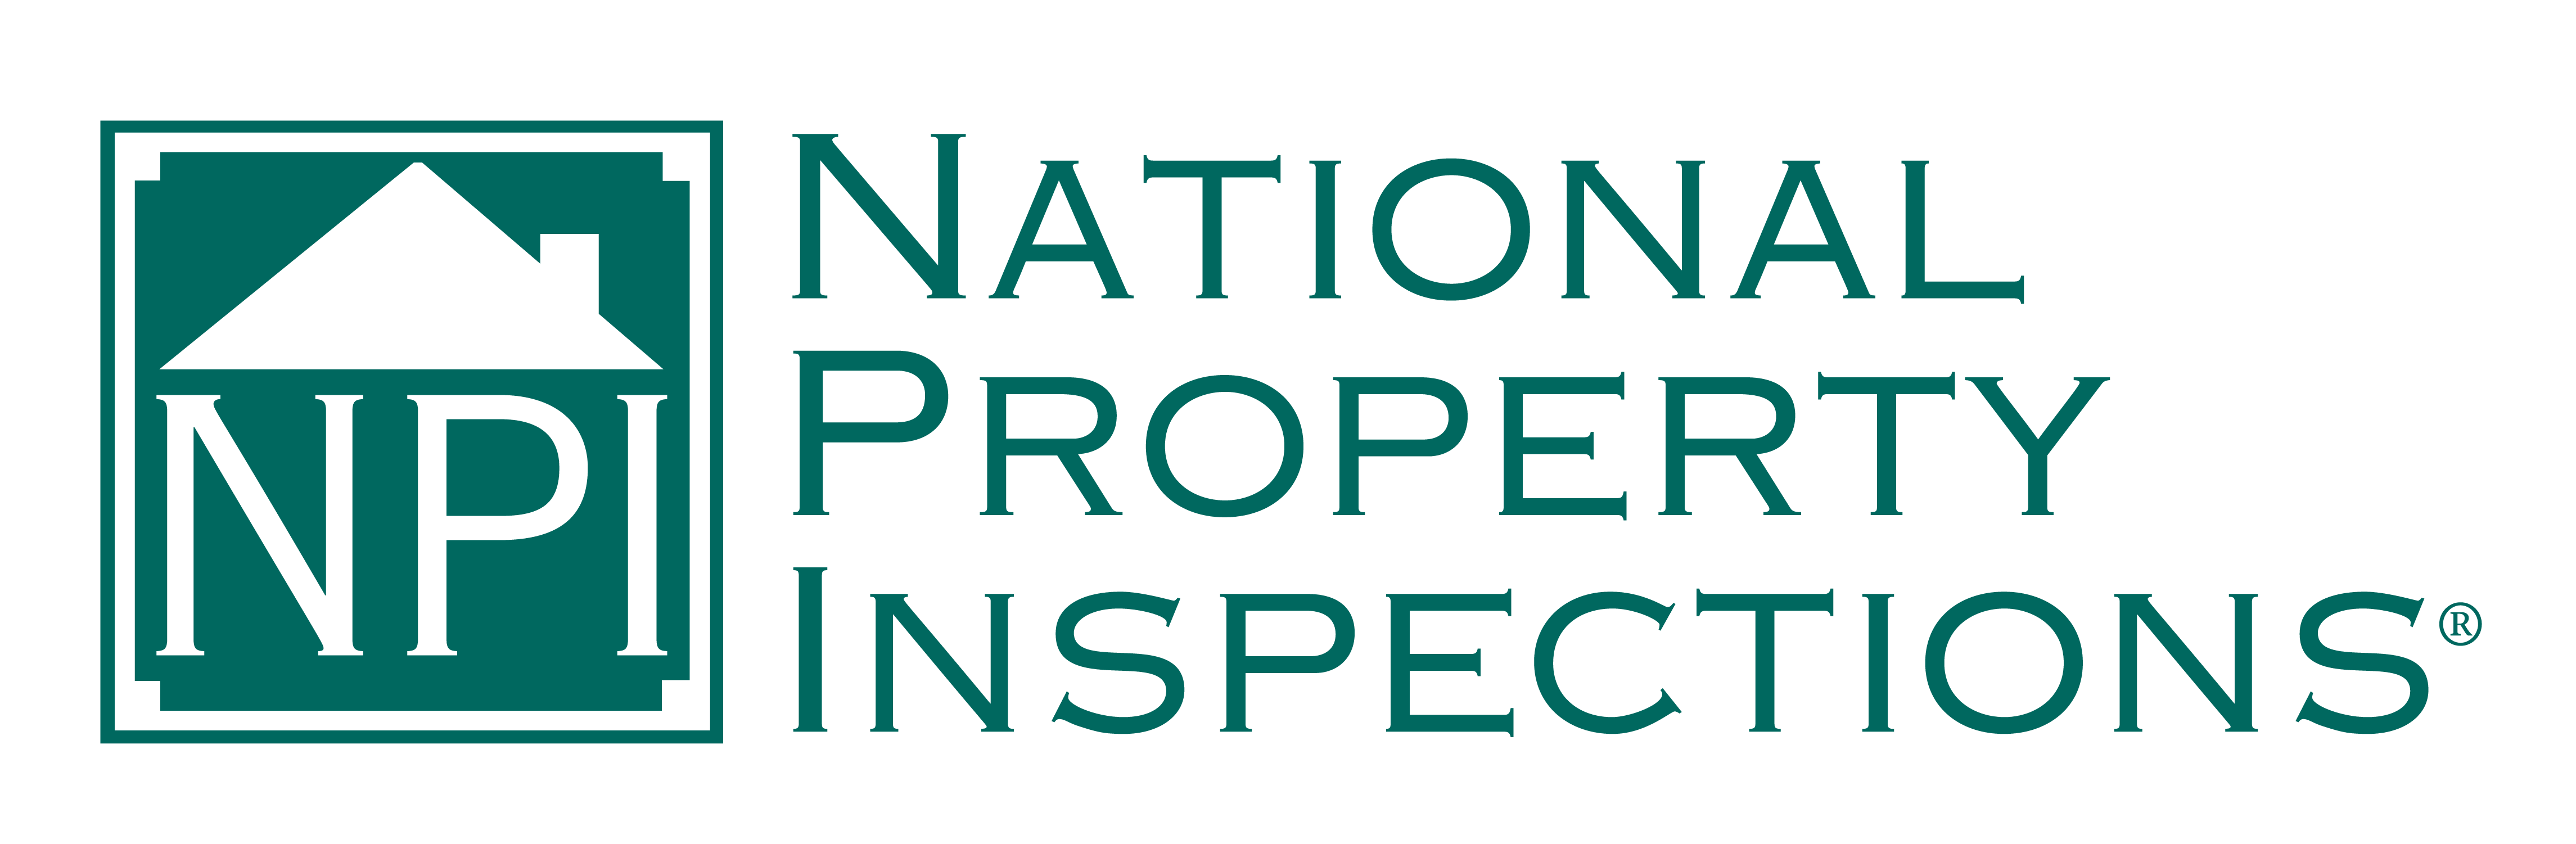 NationalPropertyInspections